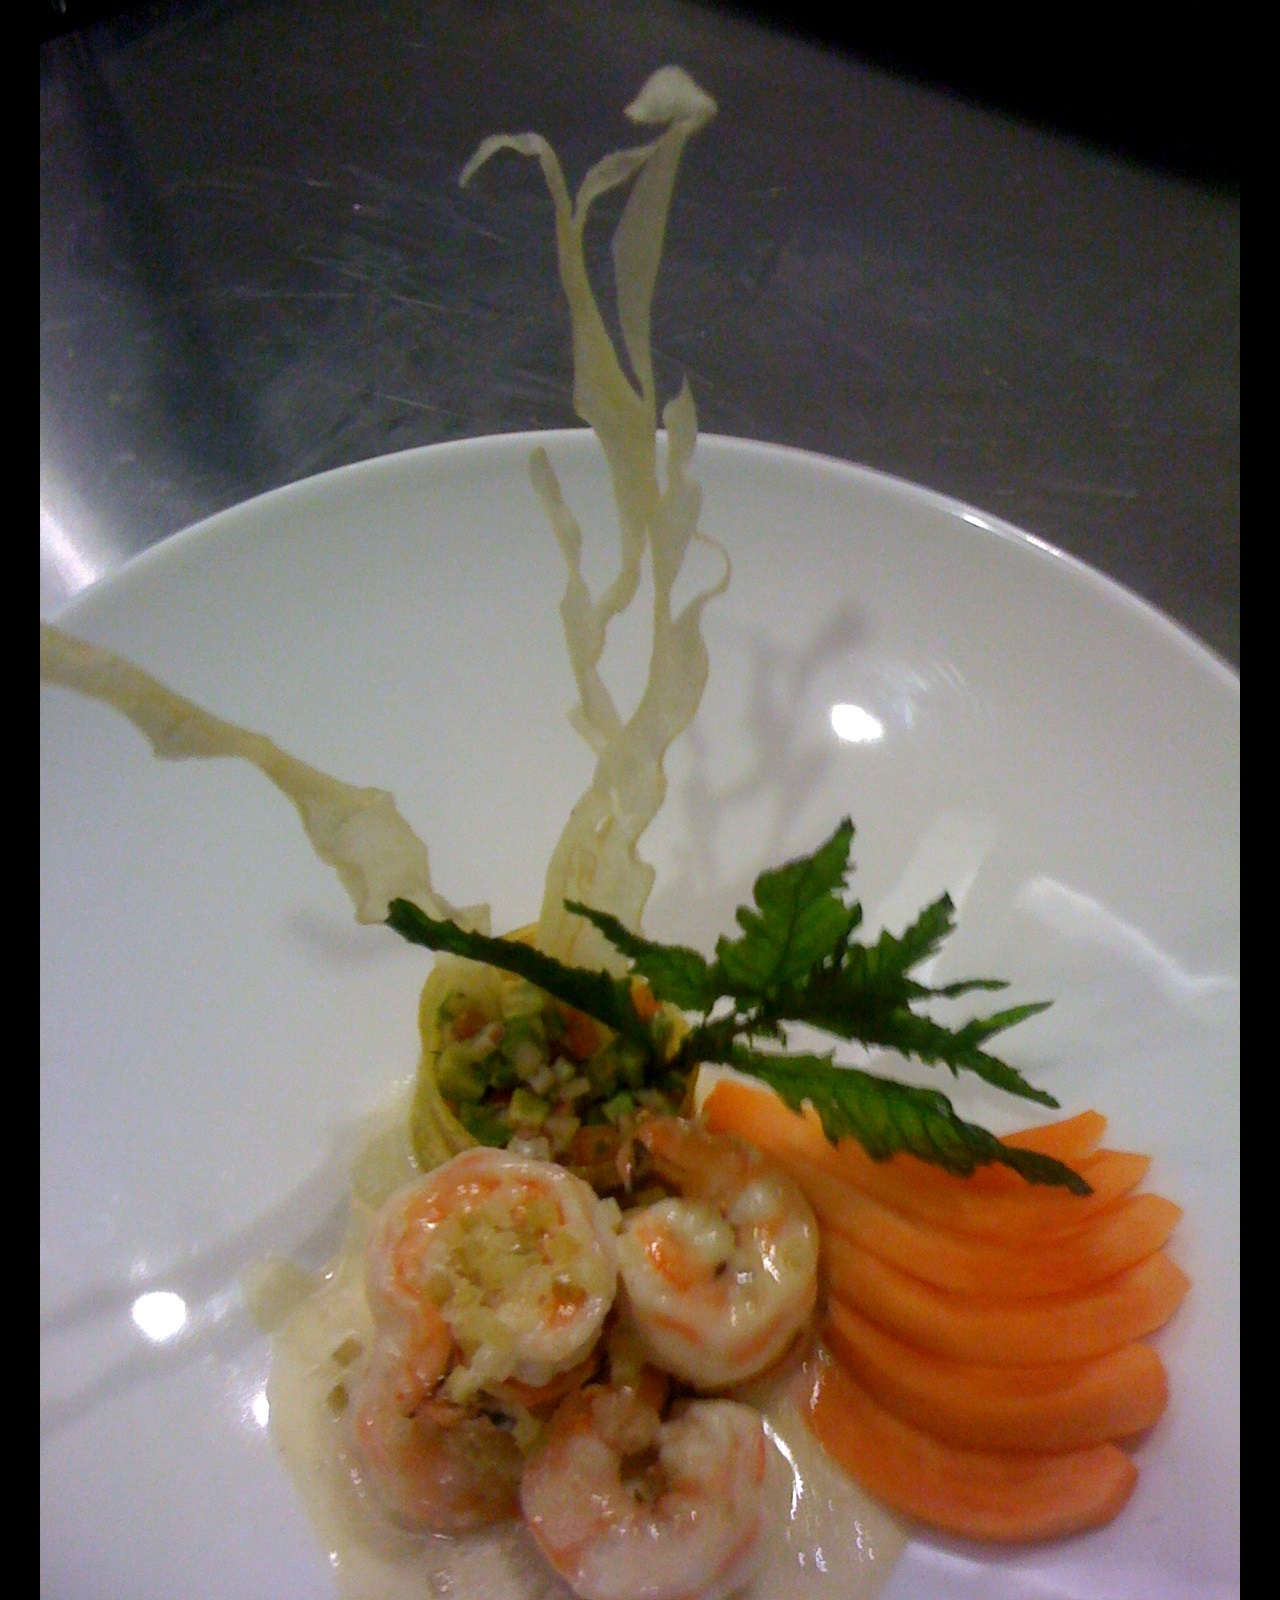 Food Photography, Culinary, Shrimp Dish, Shrimp with Carrots